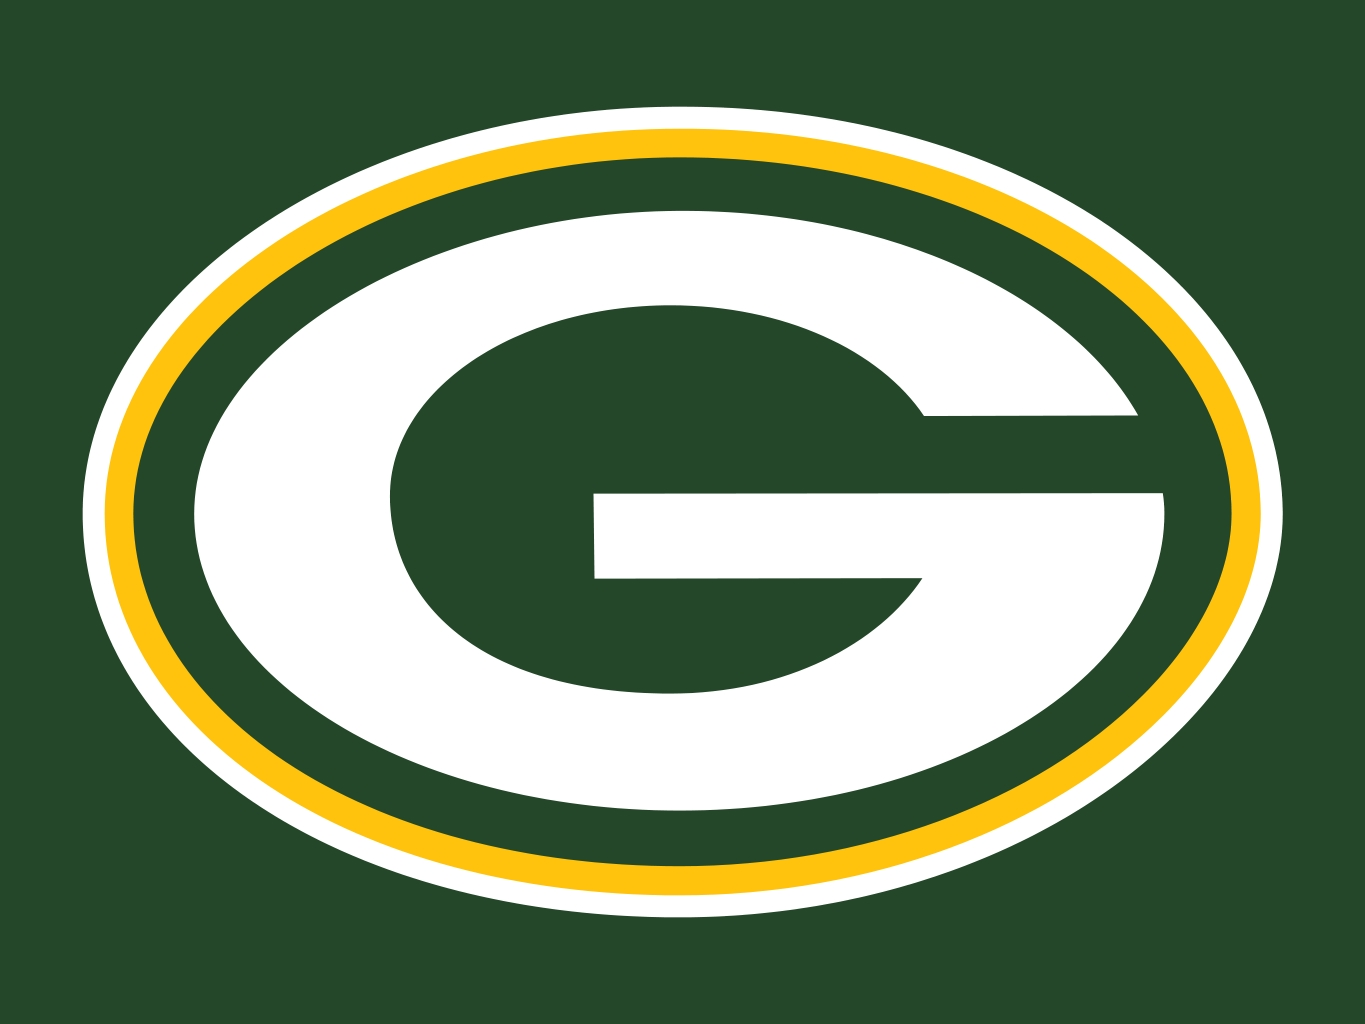 Green_Bay_Packers-logo_1492736665675.jpg